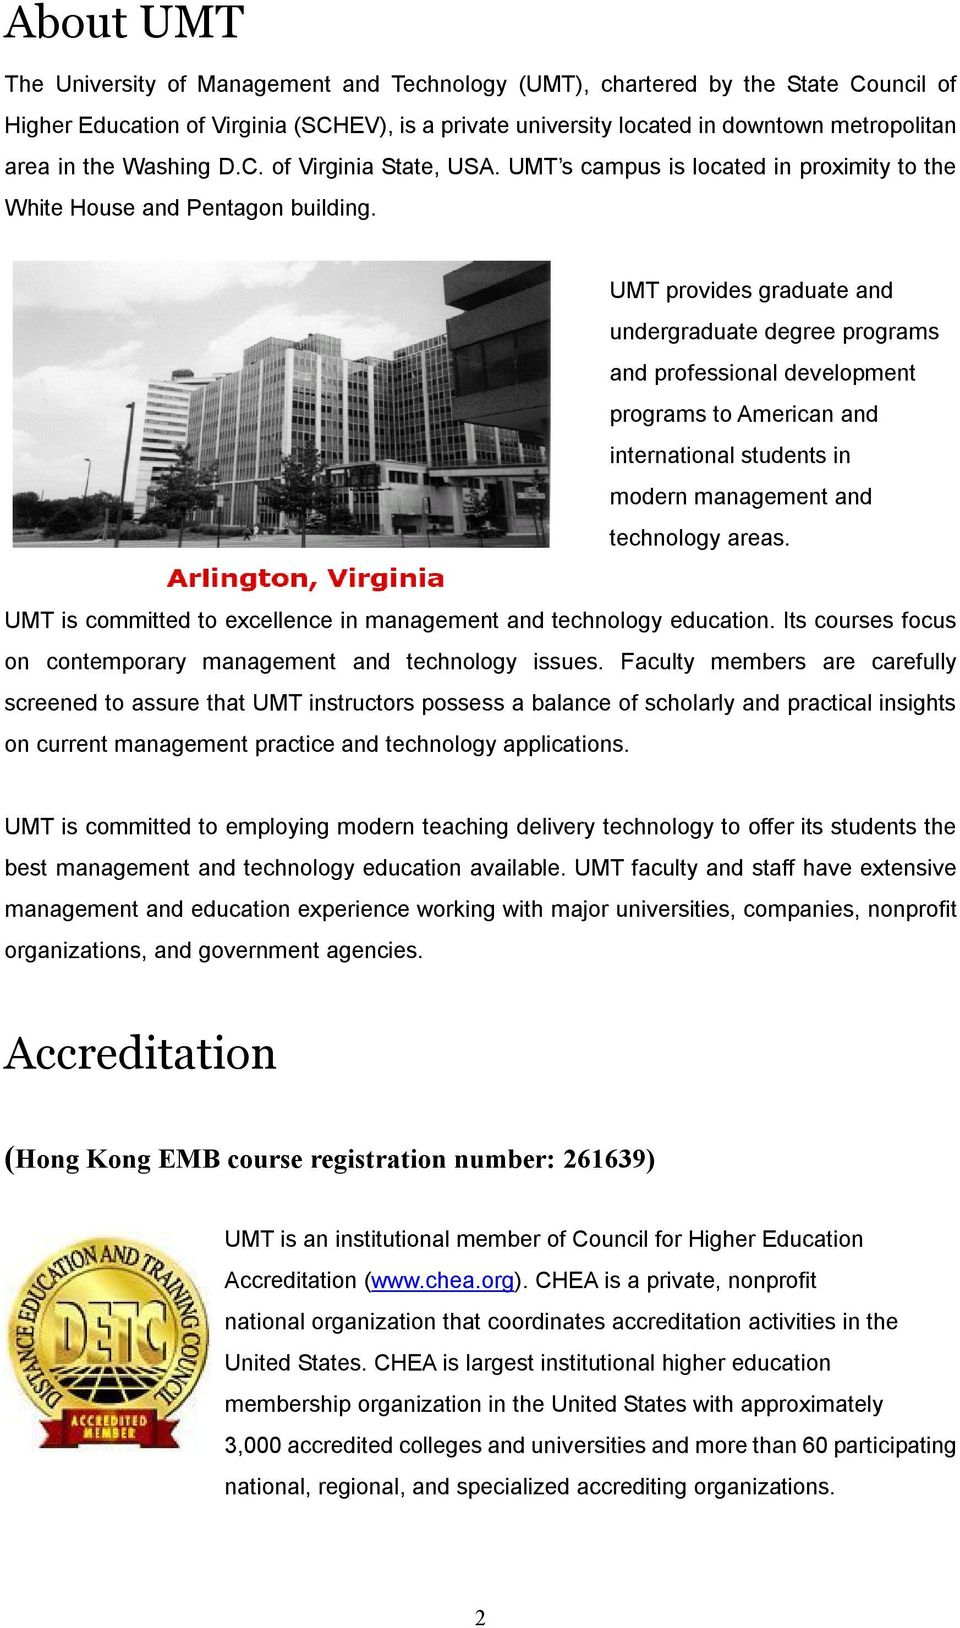 UMT provides graduate and undergraduate degree programs and professional development programs to American and international students in modern management and technology areas.